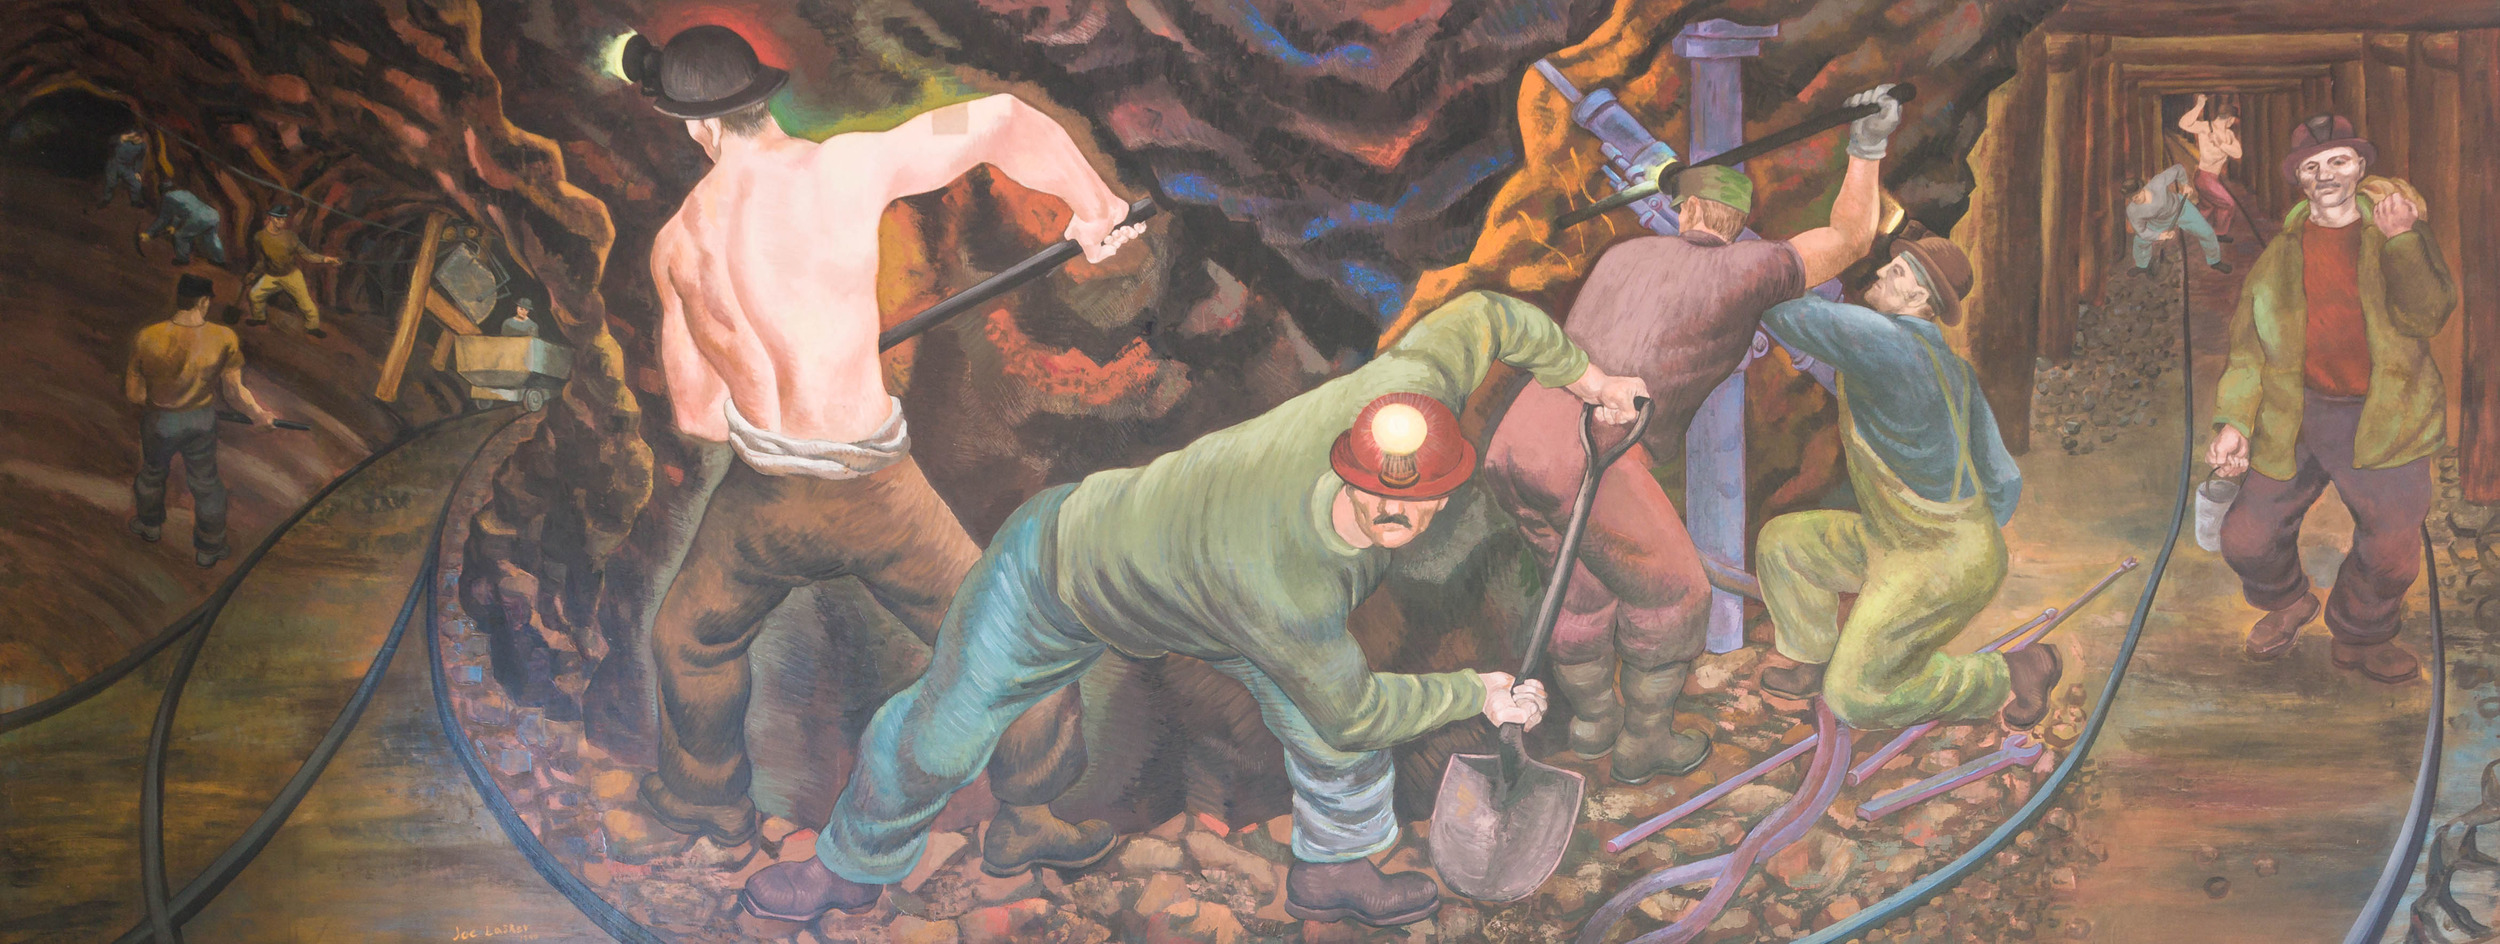 Copper Mining in Michigan - Mural